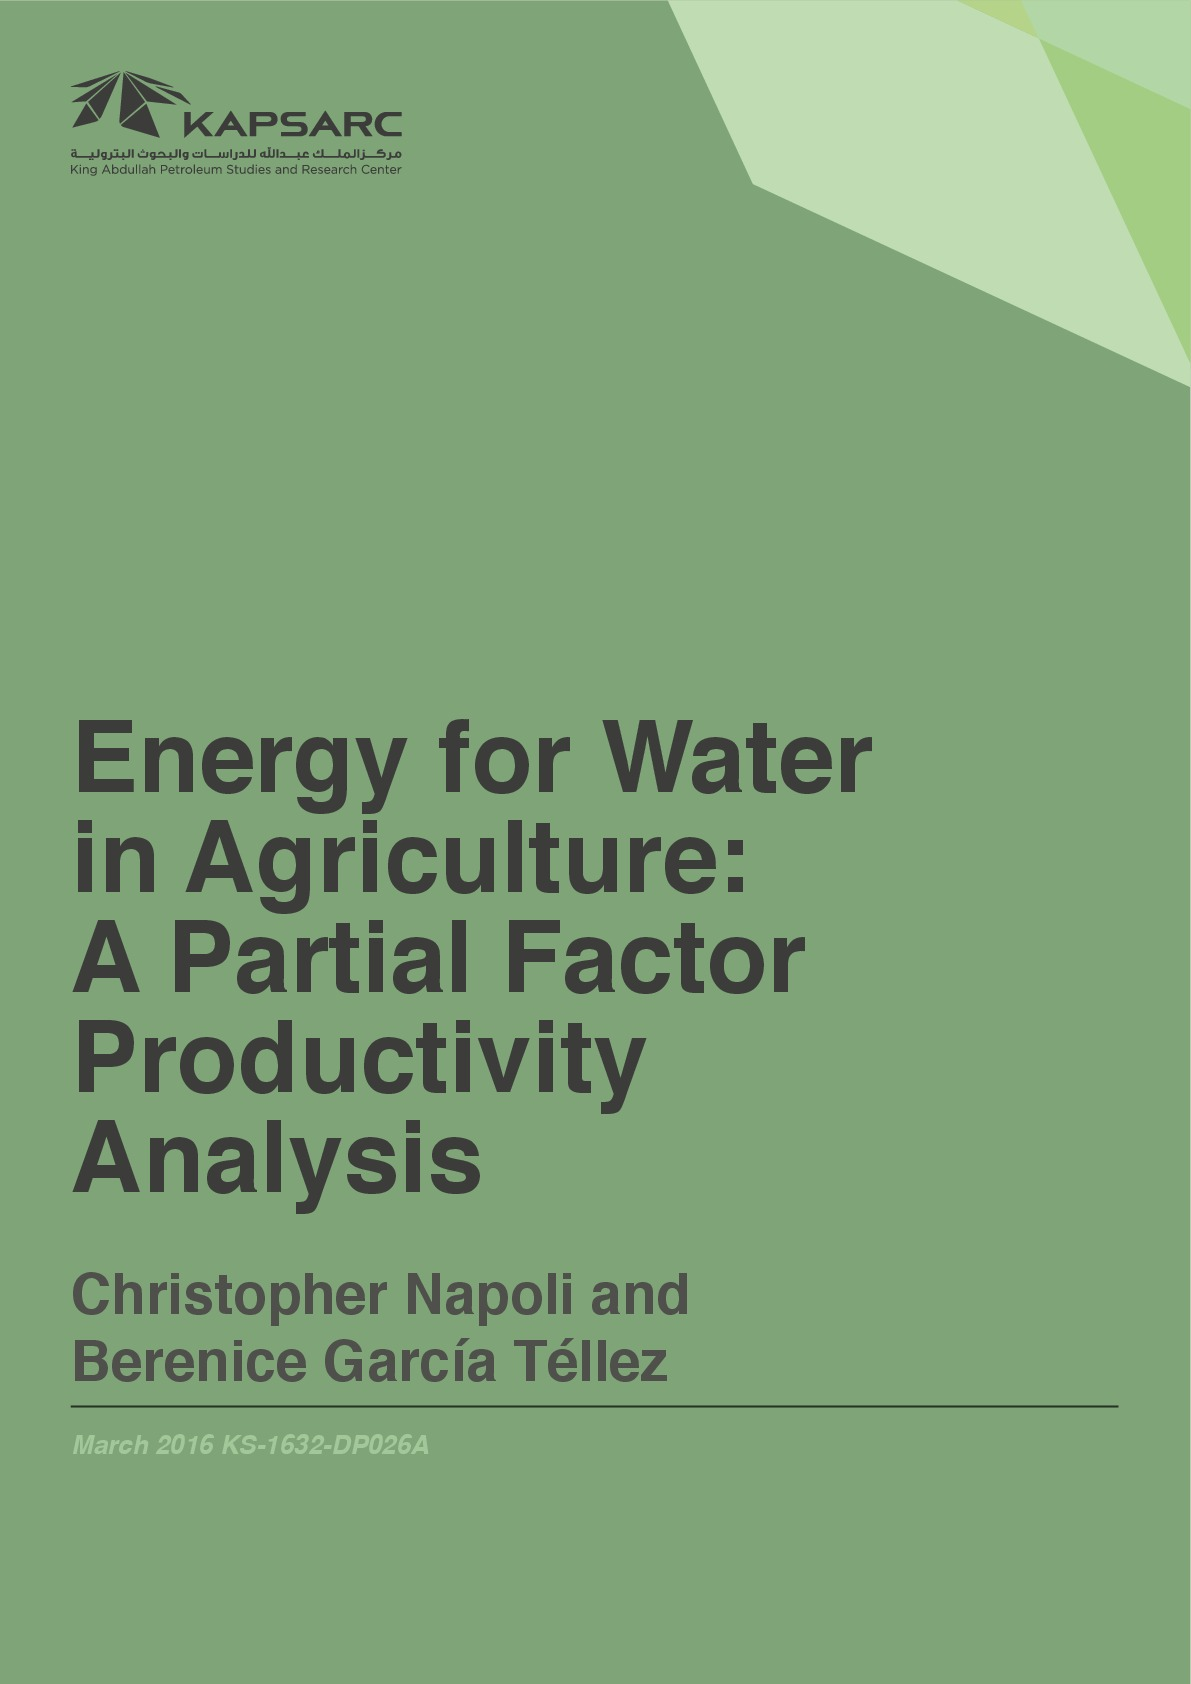 Energy for Water in Agriculture: A Partial Factor Productivity Analysis